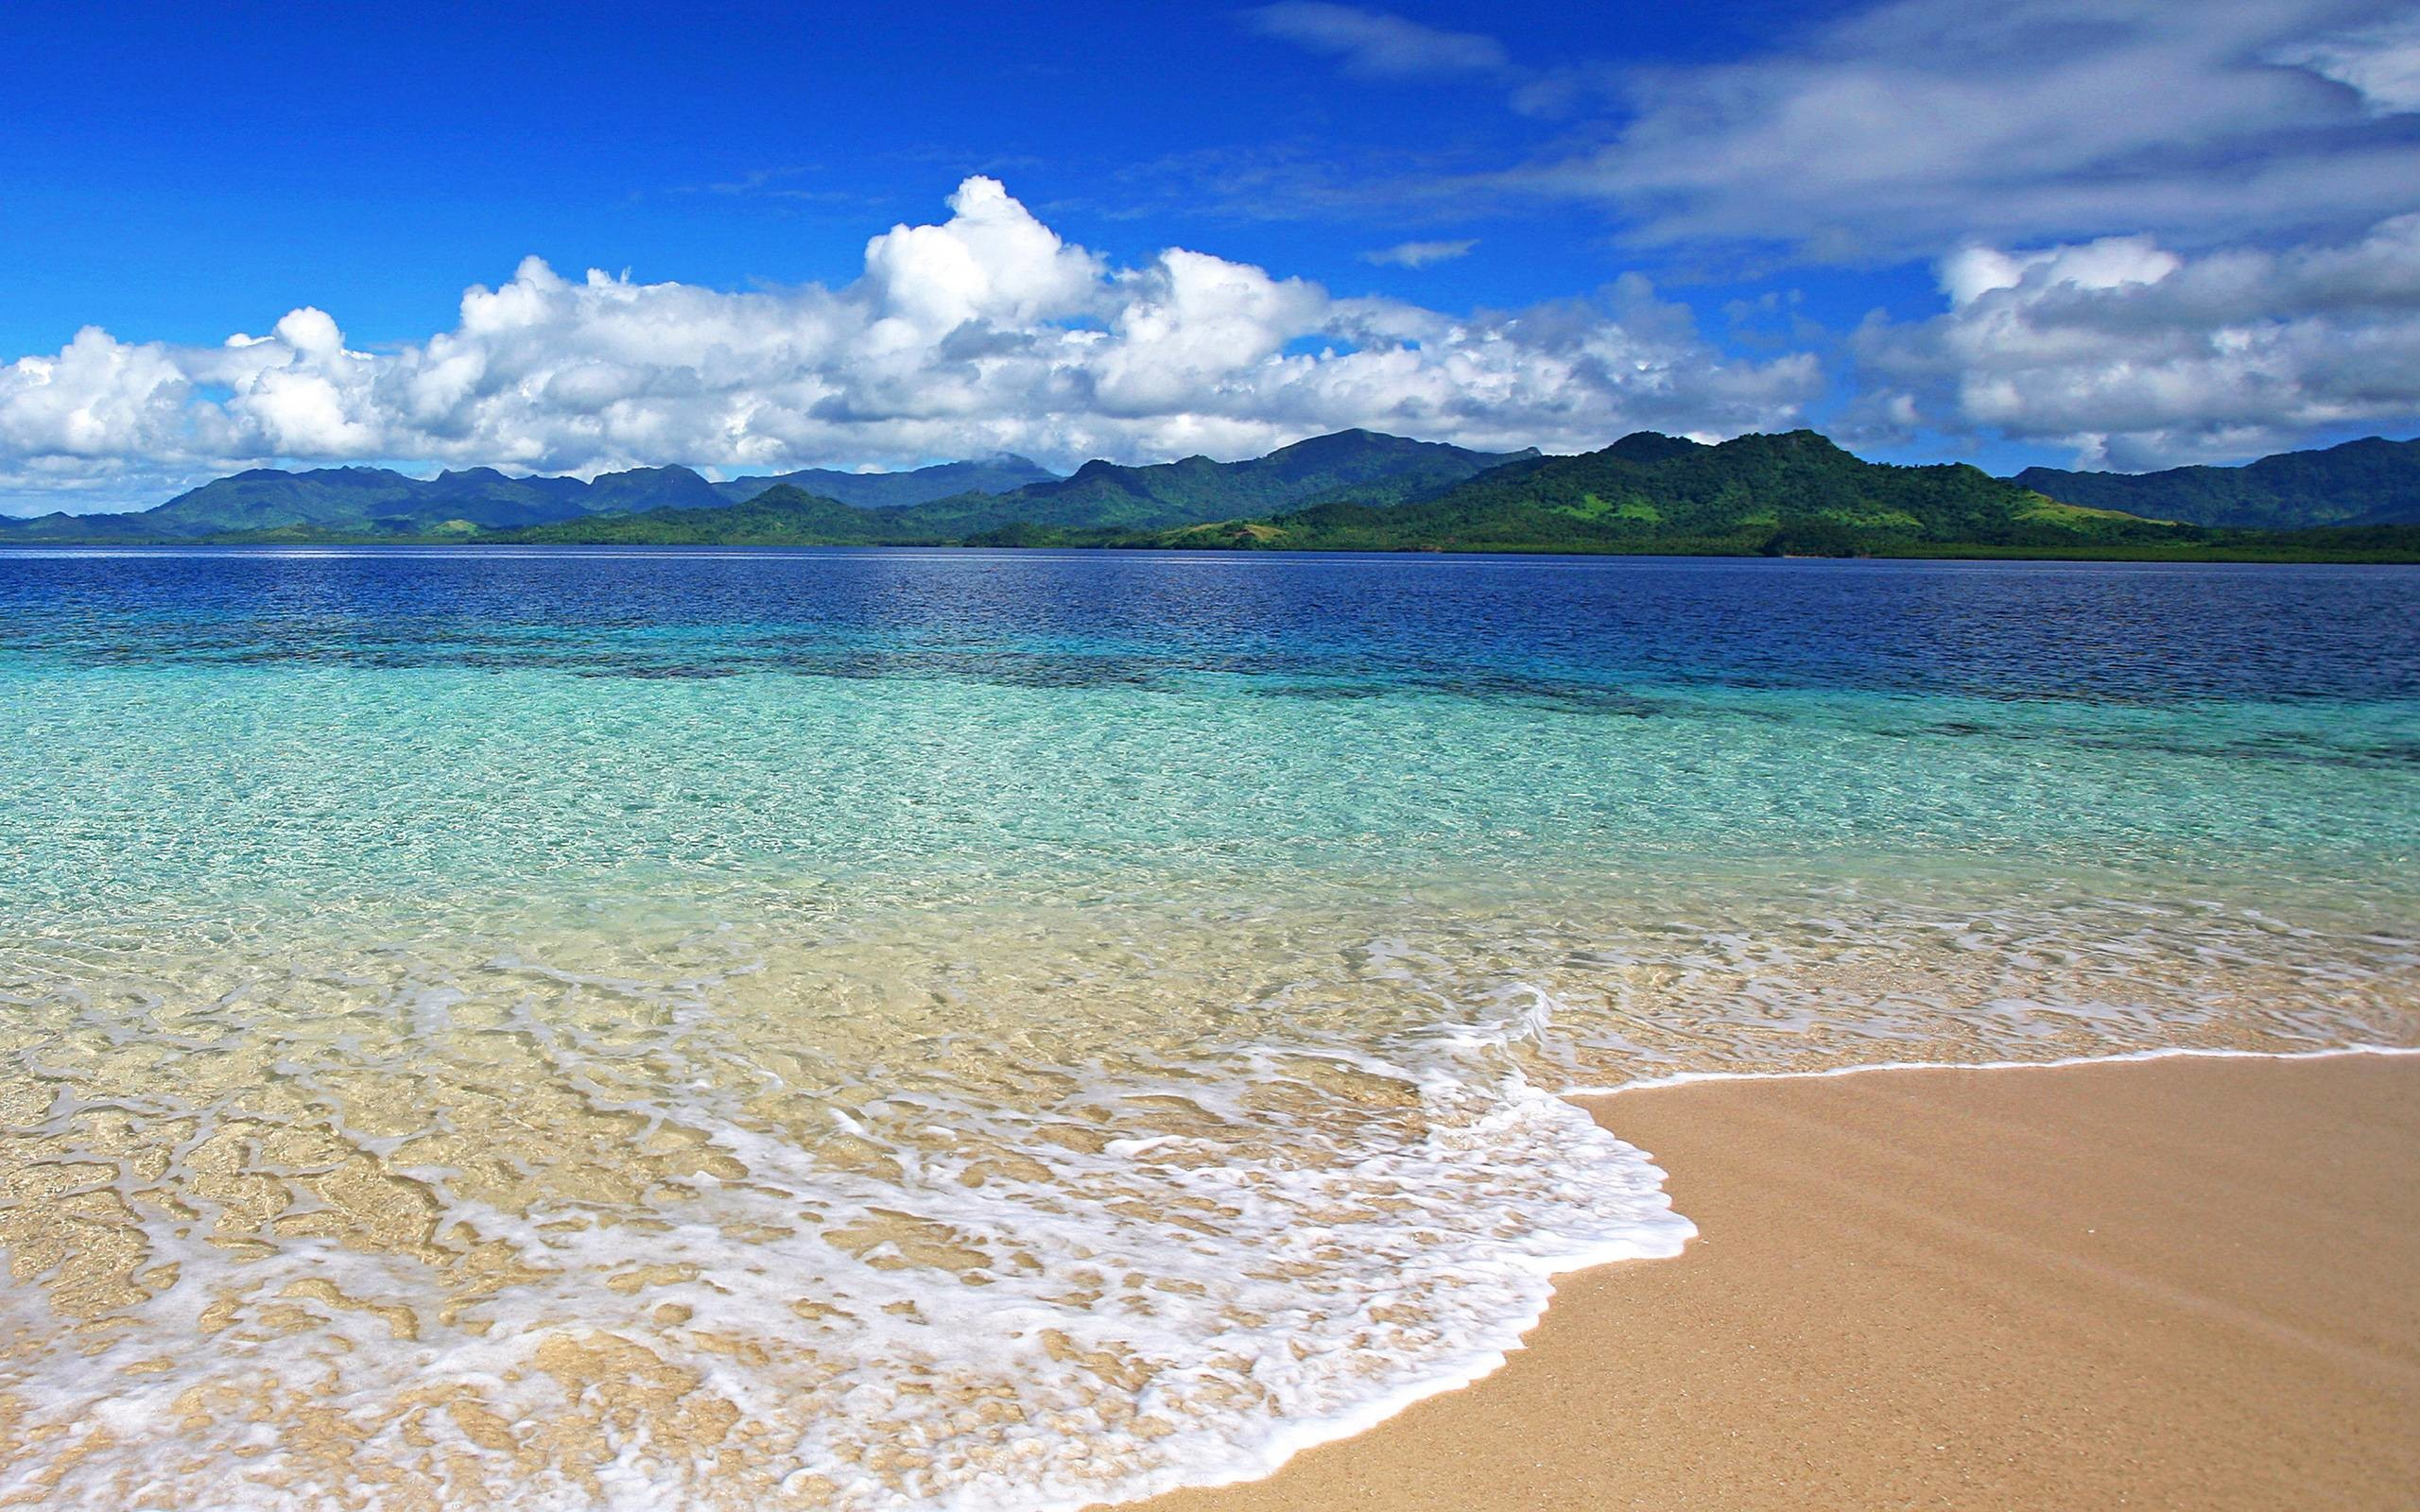 Beach Computer Backgrounds 66 images 2560x1600